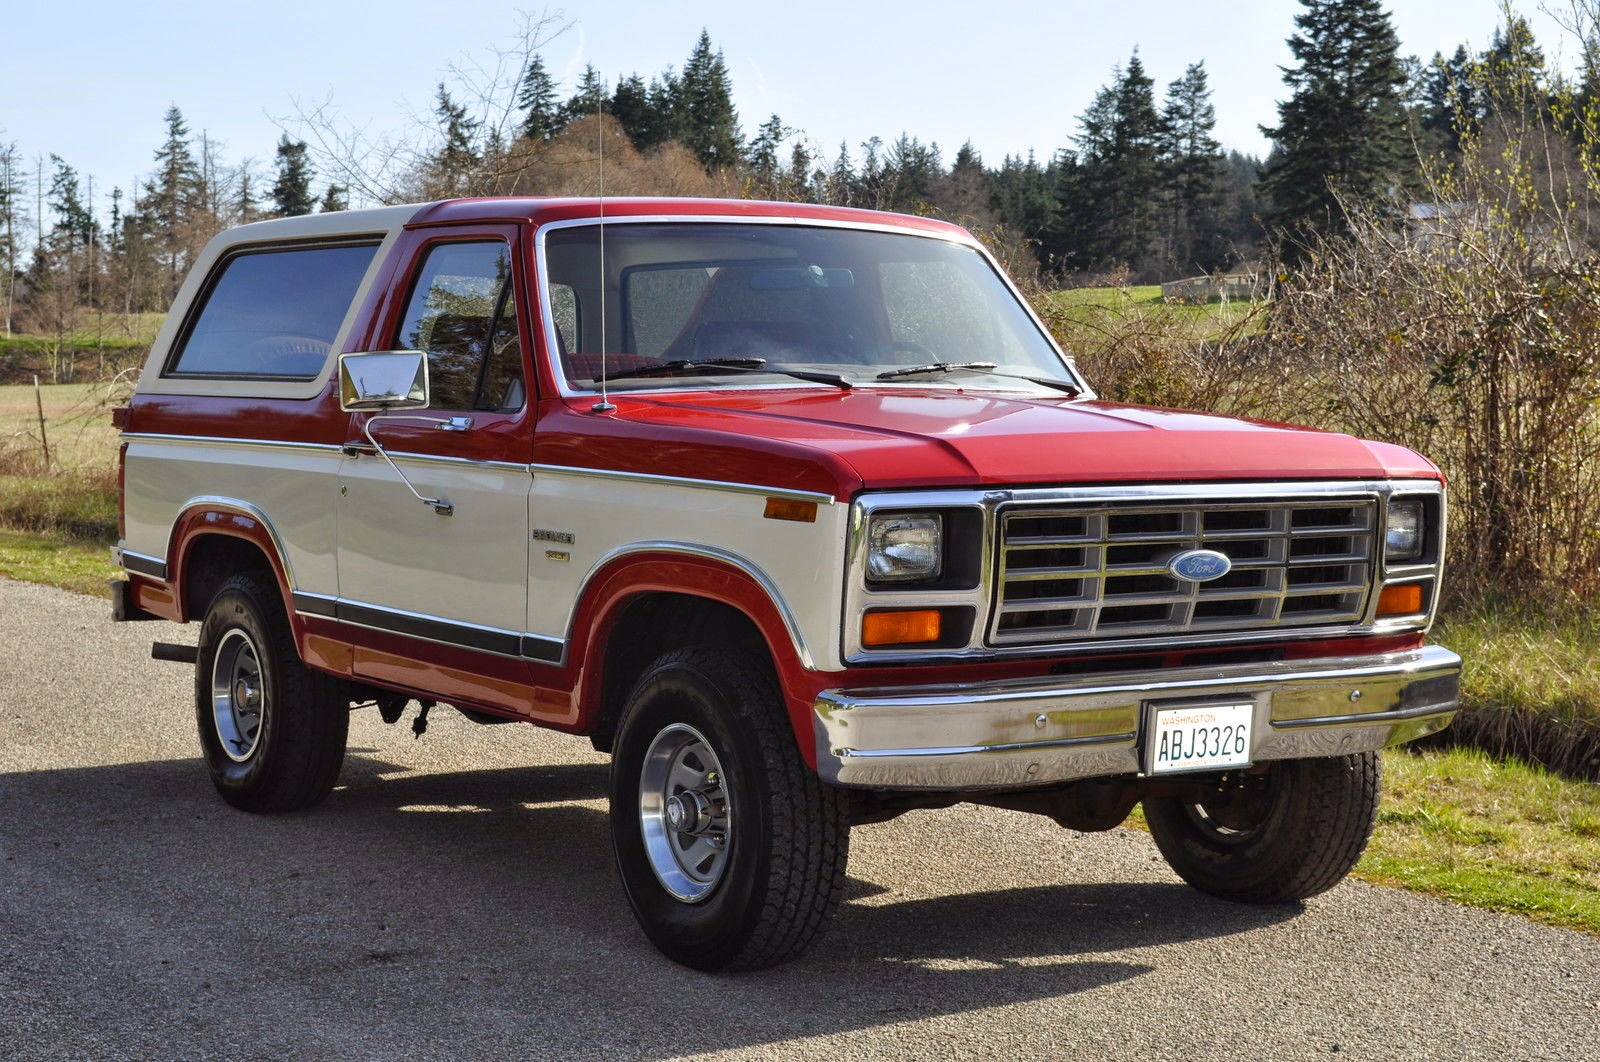 All American Classic Cars: 1982 Ford Bronco XLT Lariat 4x4 2-Door SUV